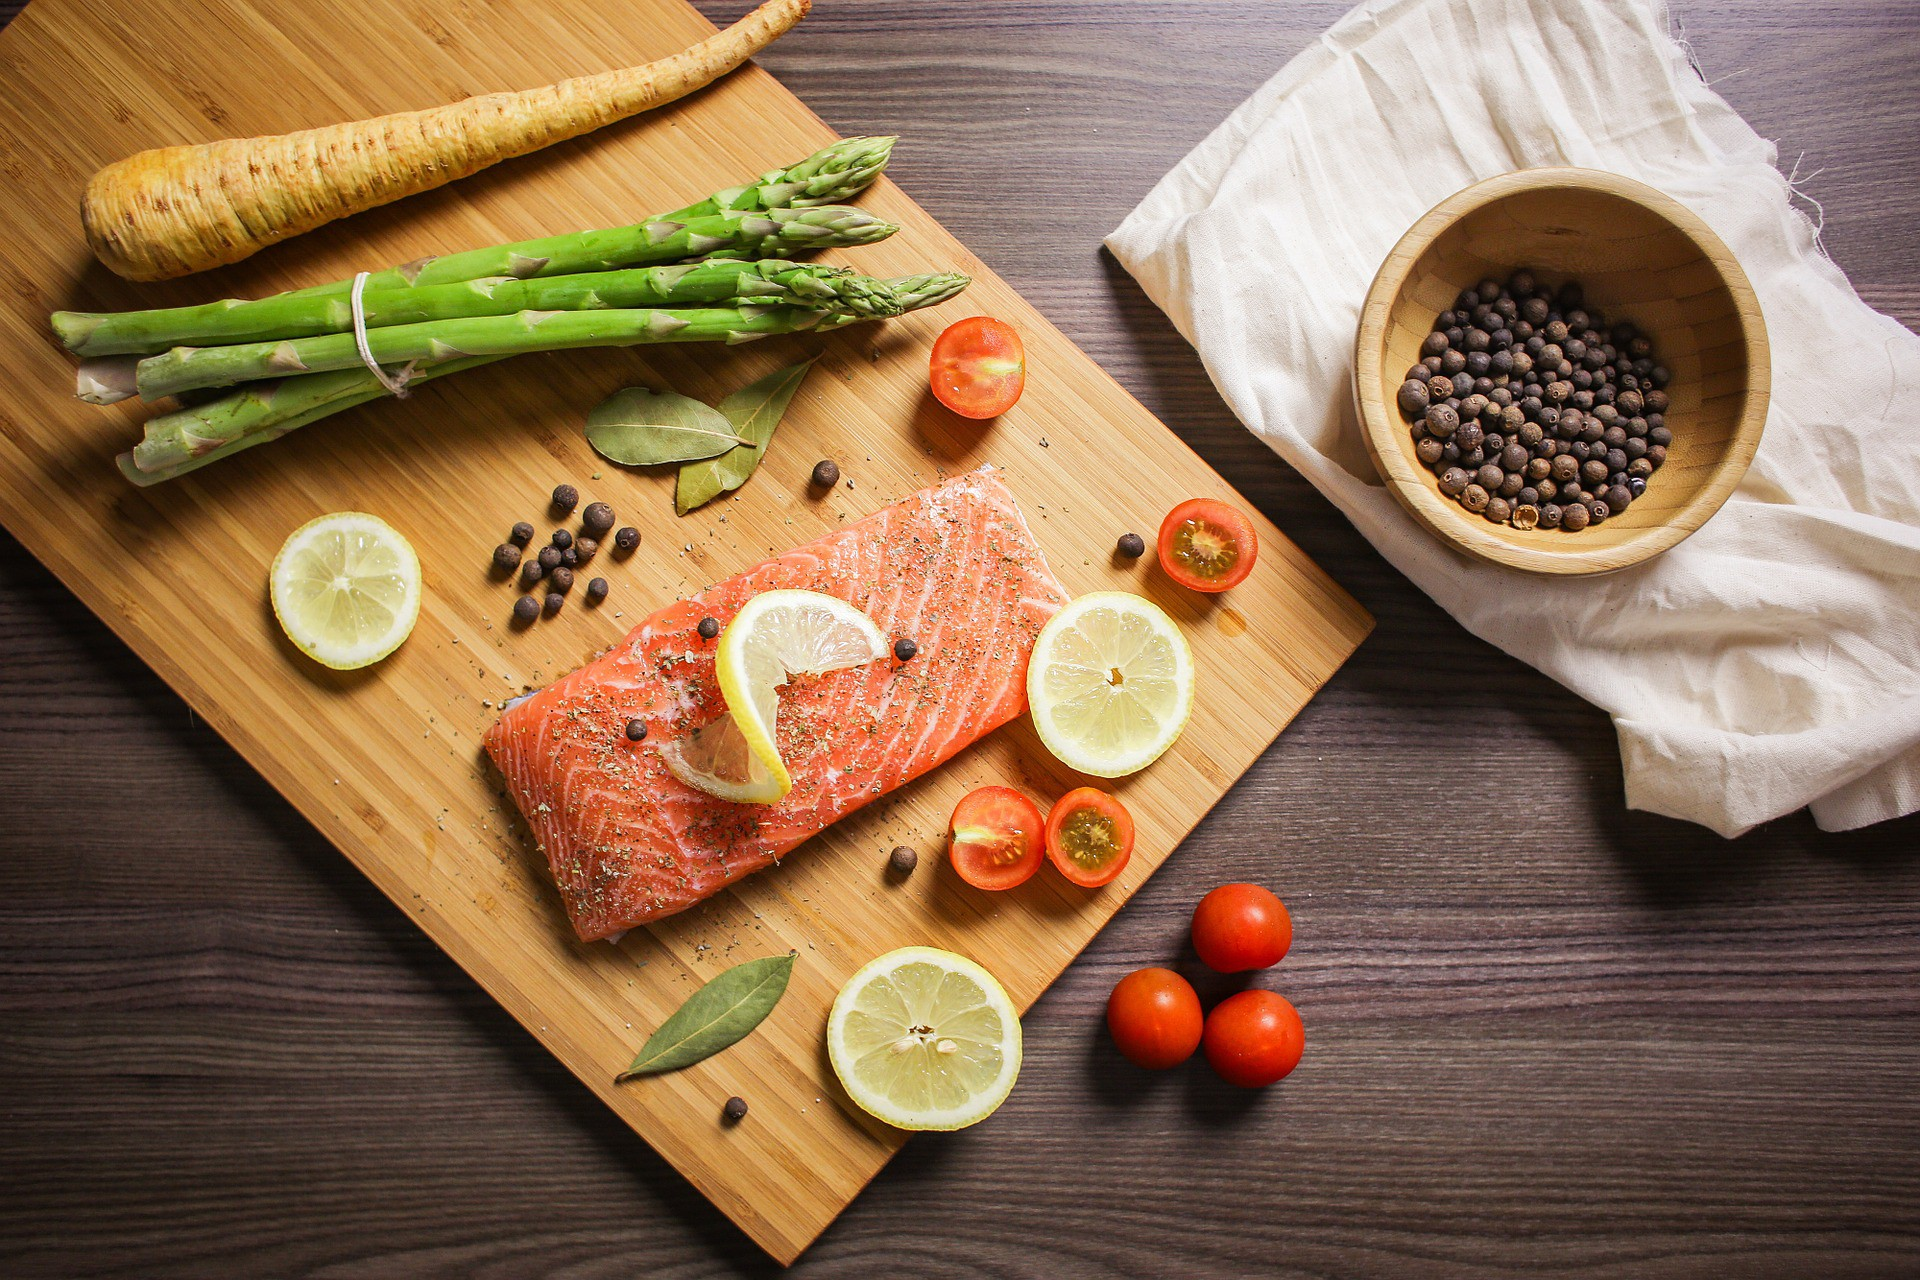 Salmon and veggies. via Pixabay